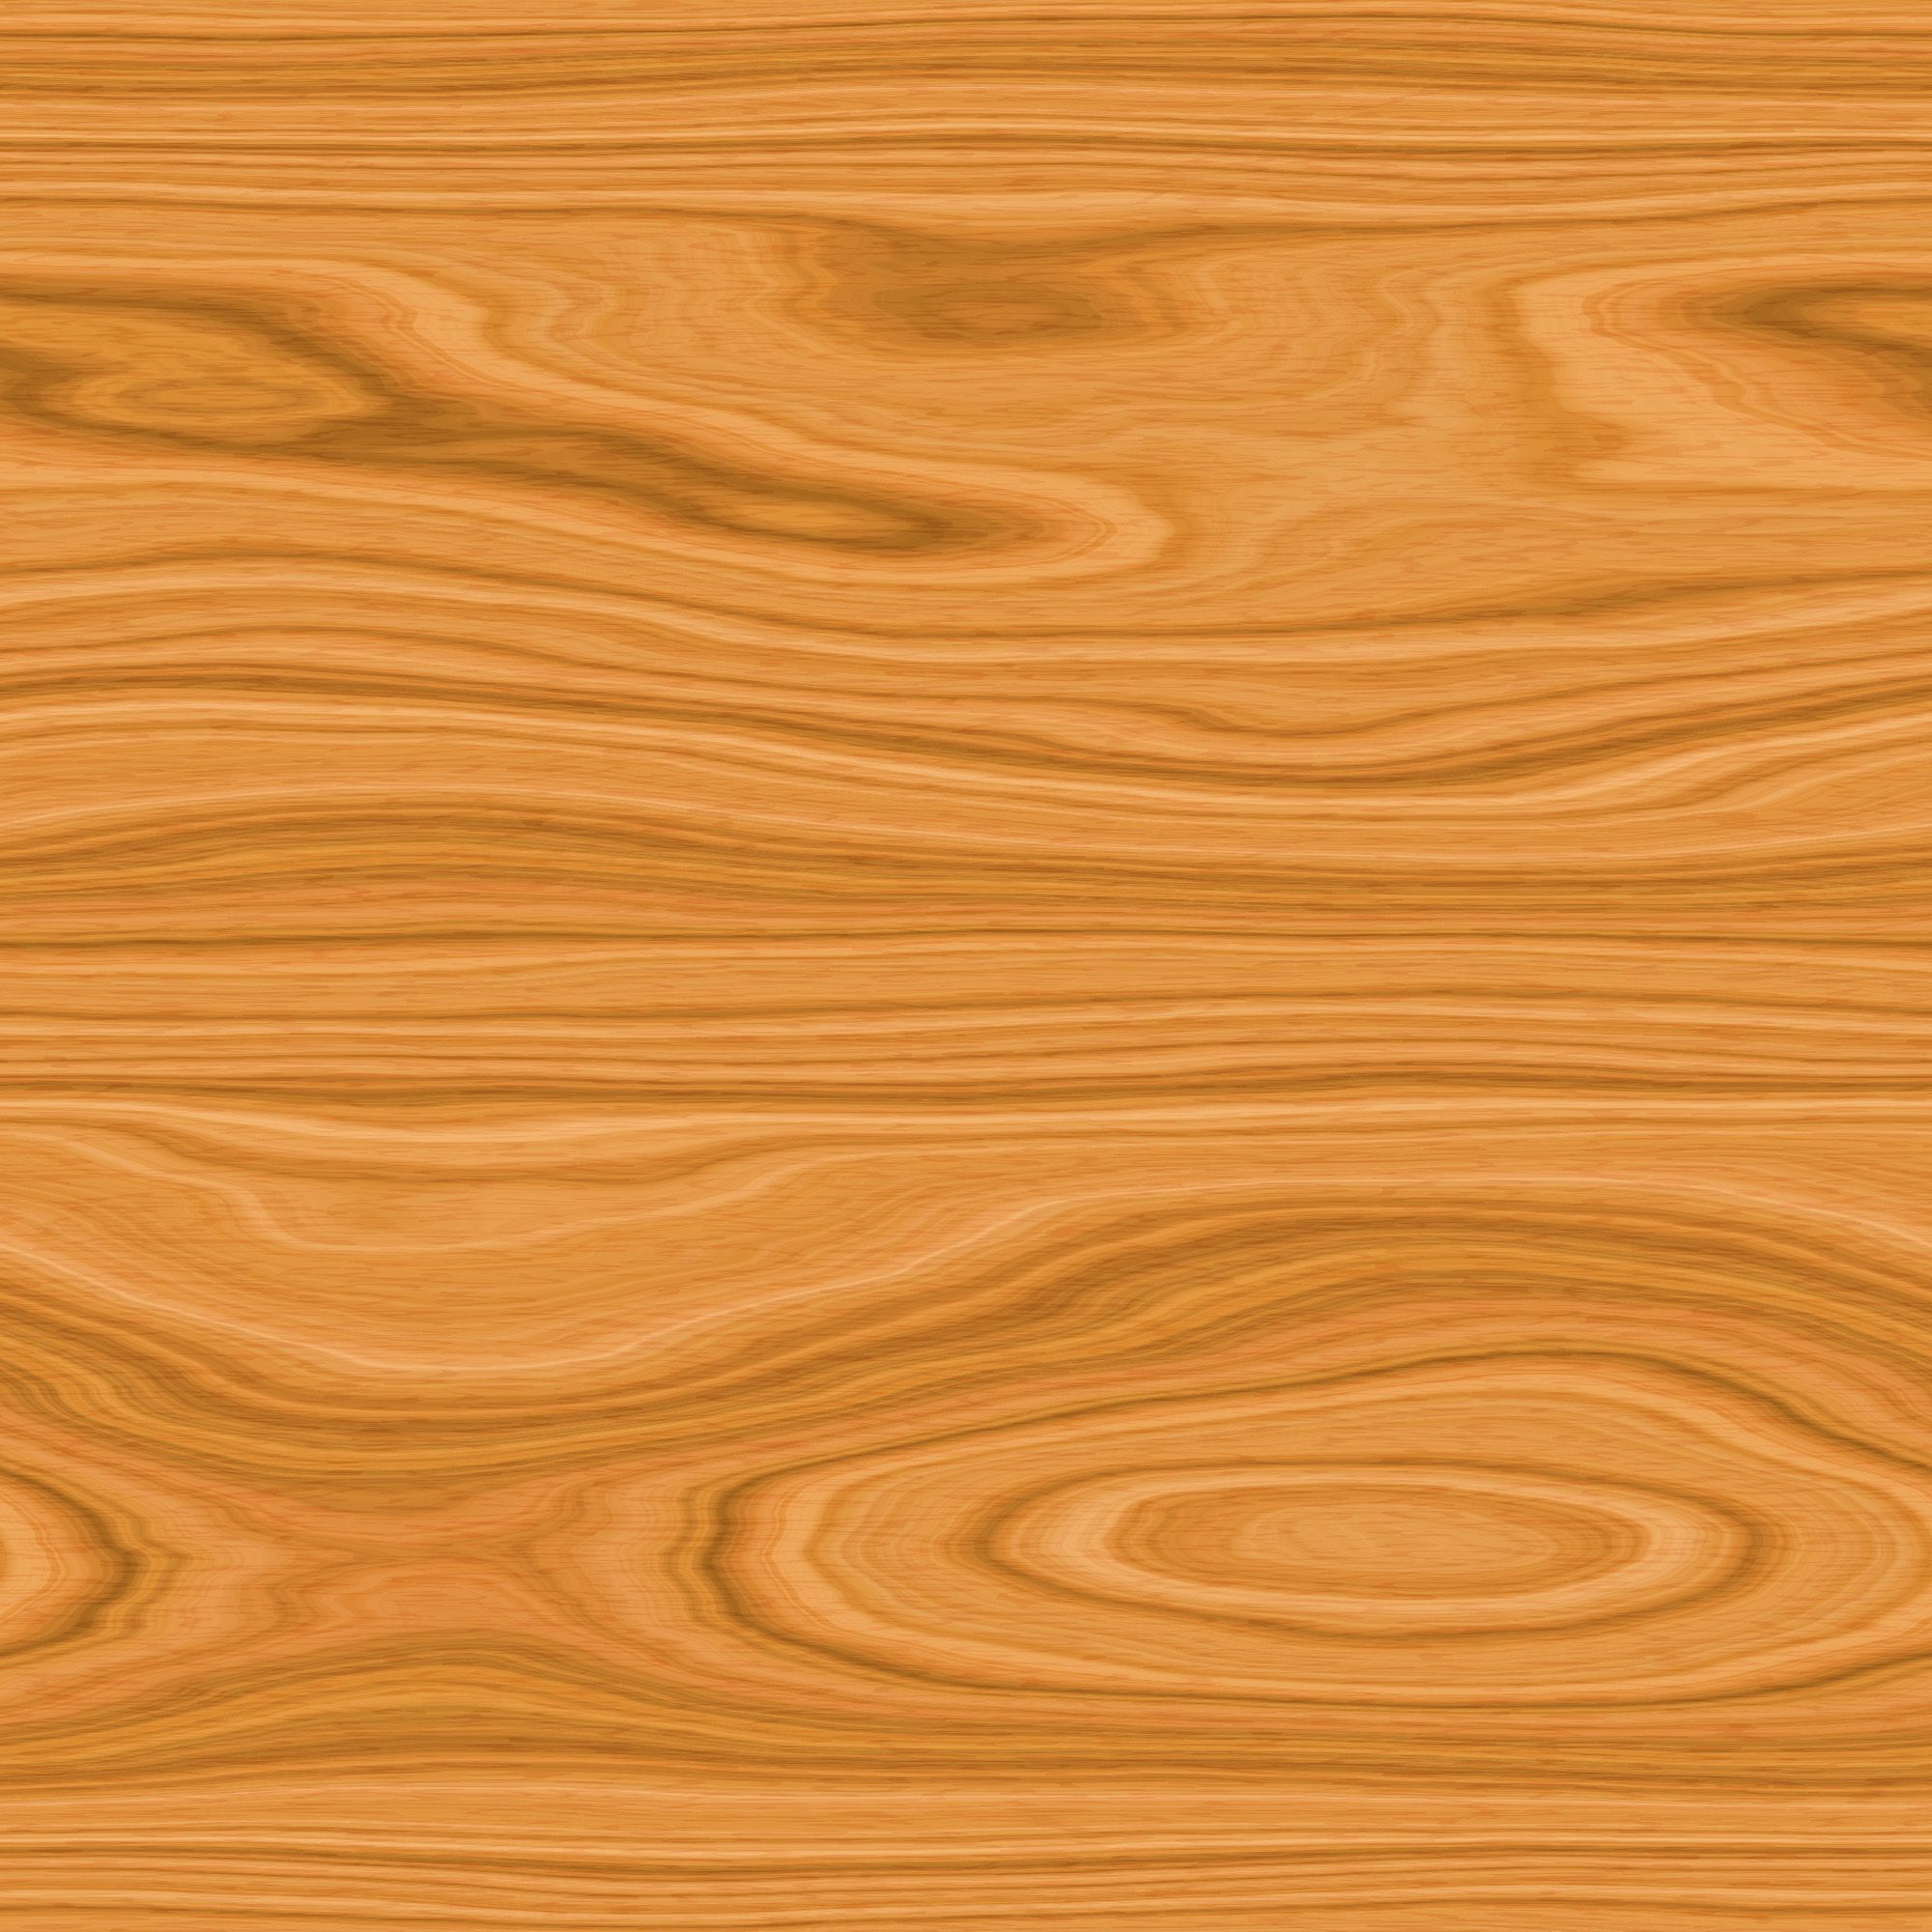 Wood background texture wooden tiles free image wood background - Free Oak Texture In A Seamless Wooden Background Image Well It S Actually A Generated Picture So It Is Just Guess That It Is Oak Another Seamless Wood